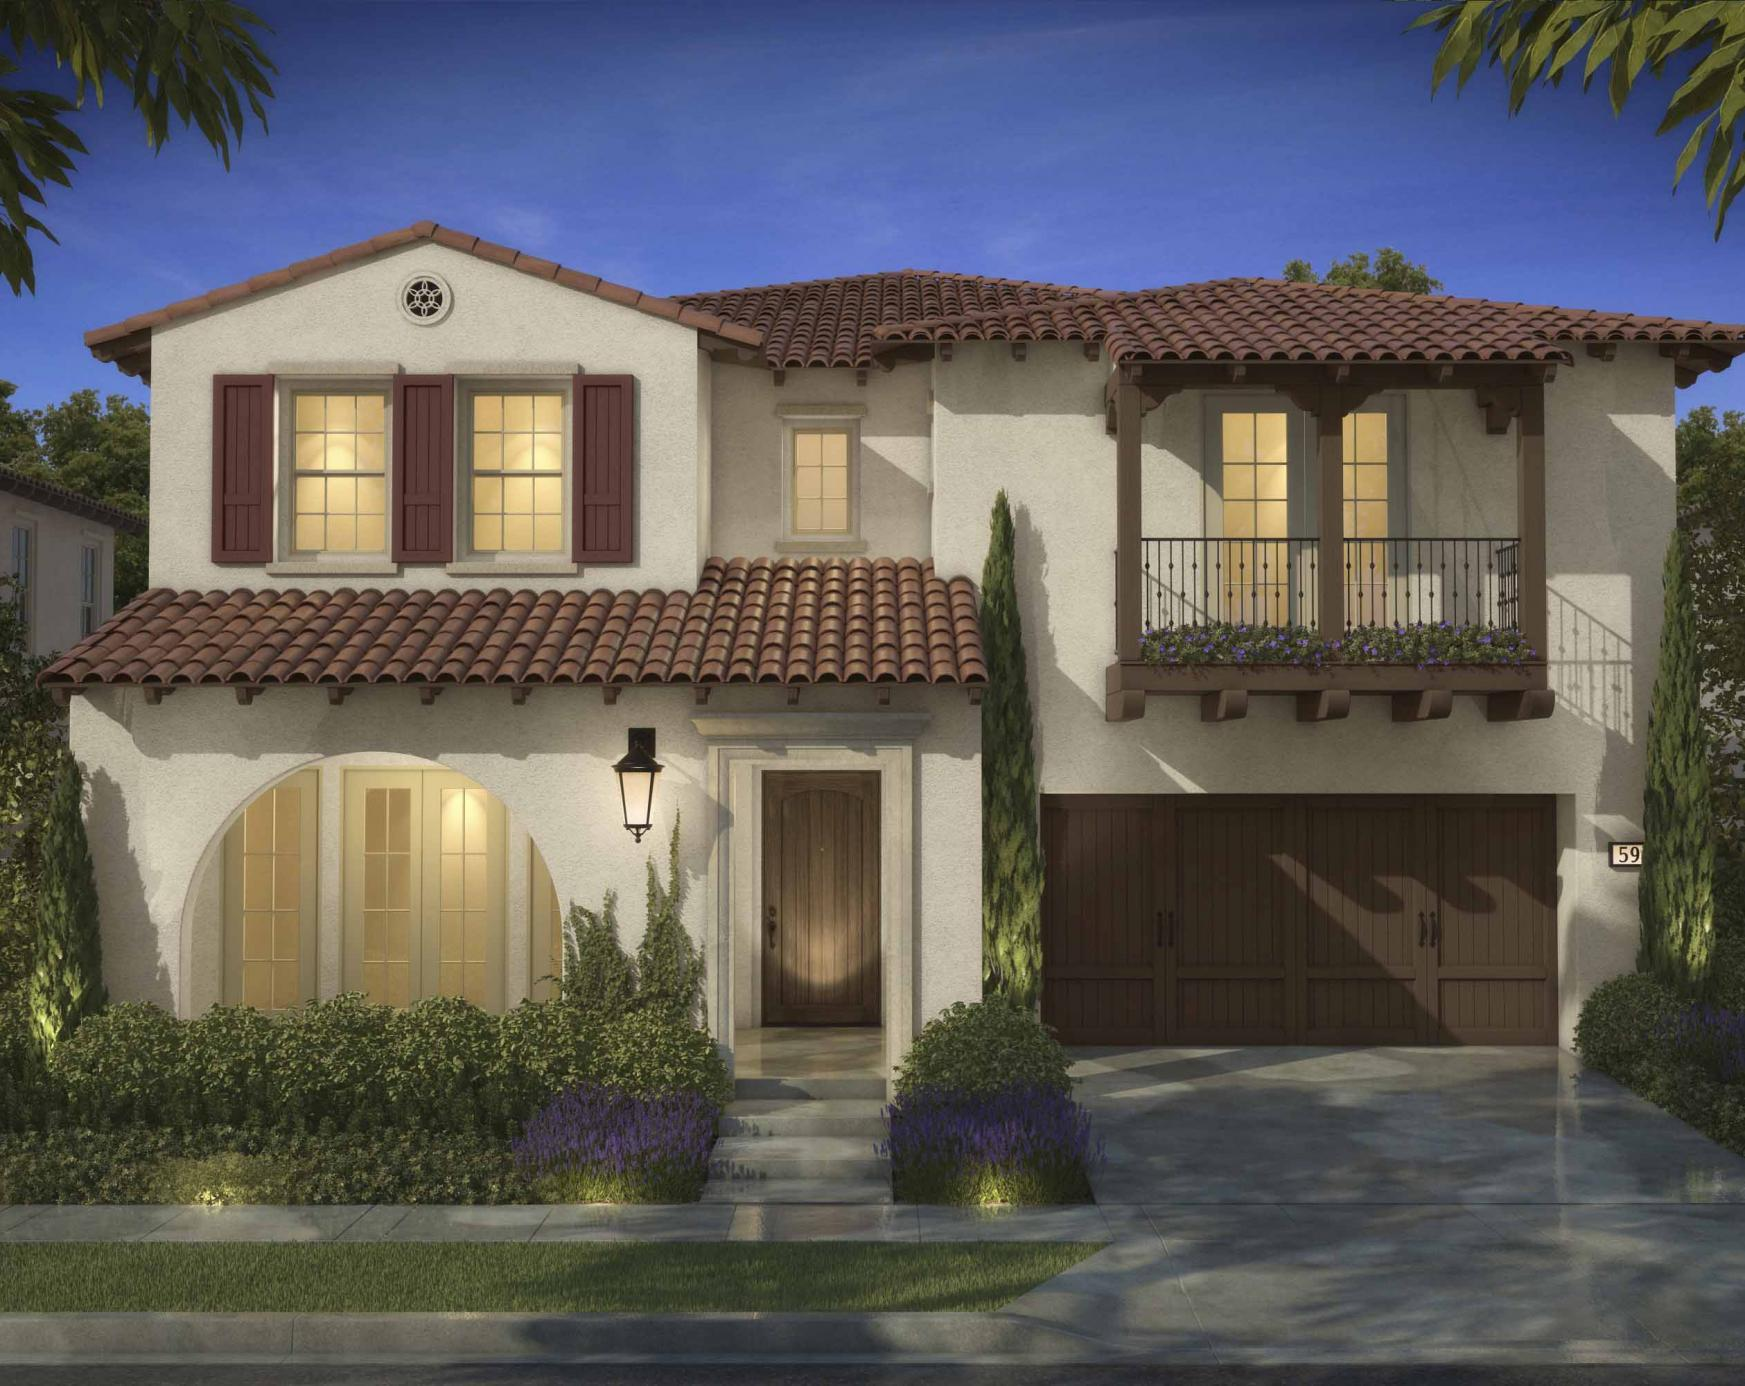 The New Home Company New Home Plans in Irvine CA   NewHomeSource